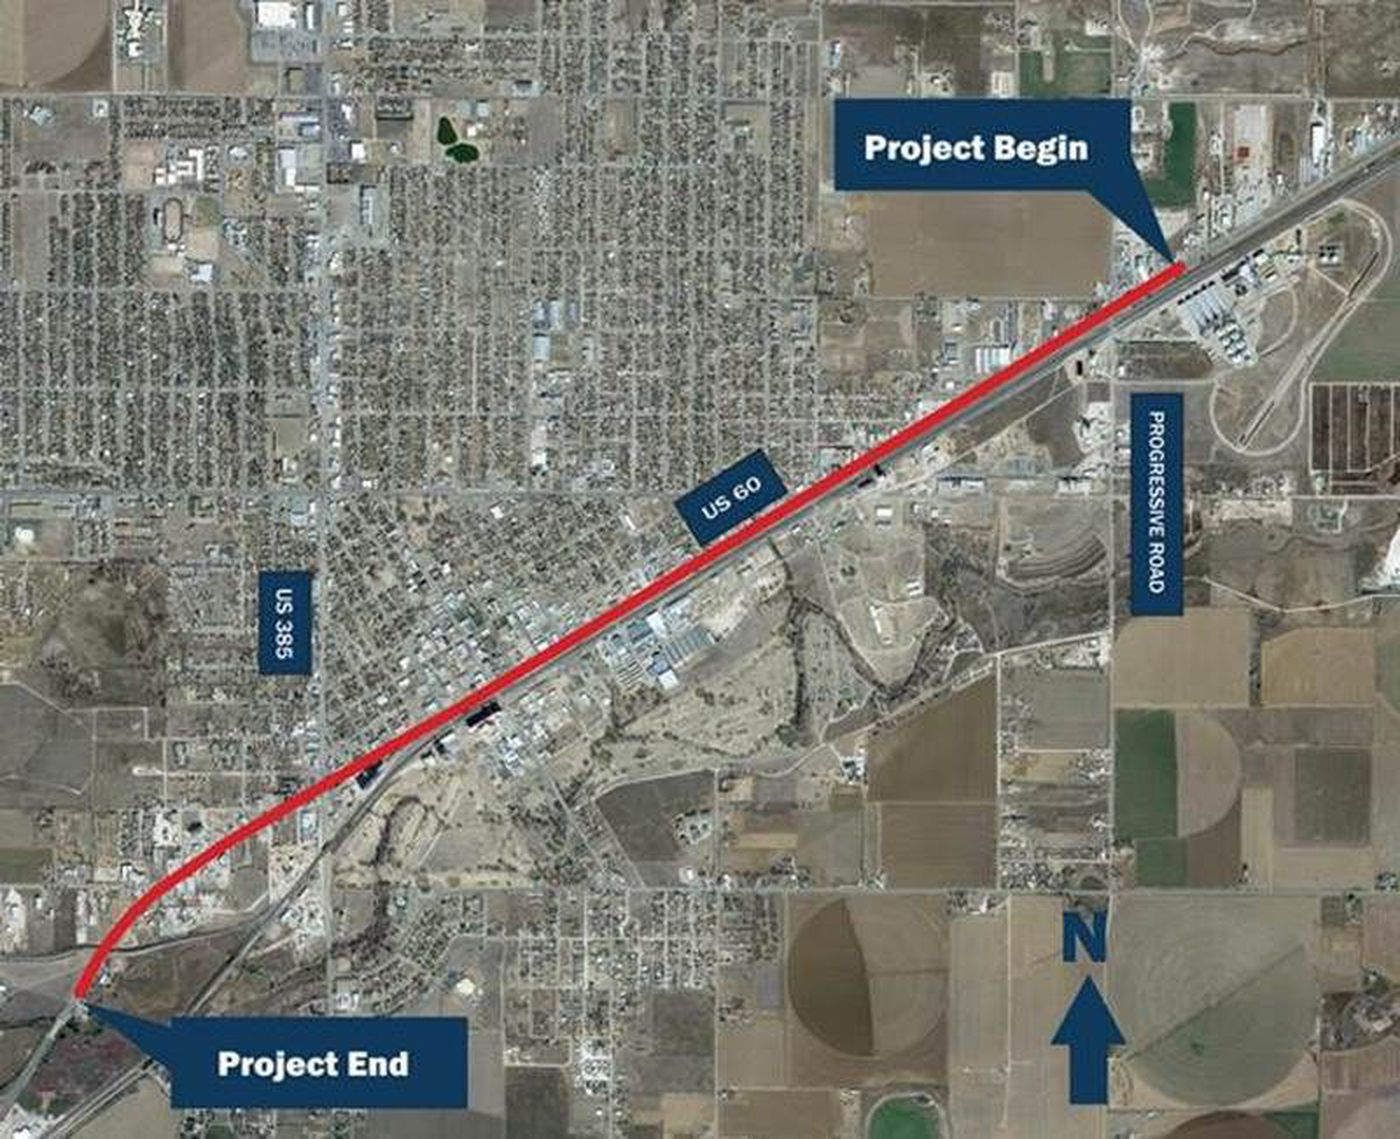 US 60 Roadway Project aims to revamp Hereford highway